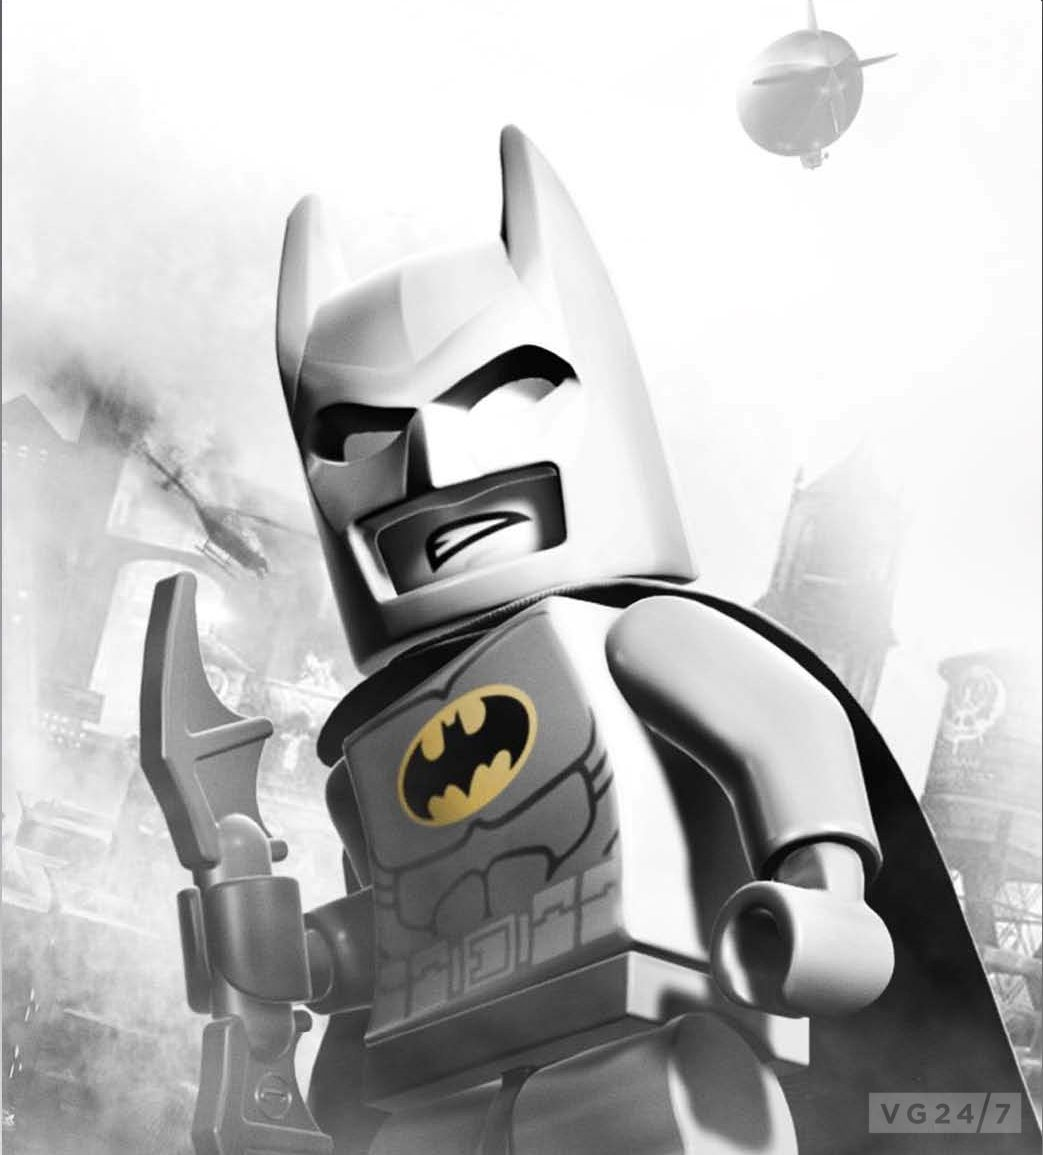 Lego batman 2 dc super heroes teases characters arkham city style comicsalliance comic book culture news humor commentary and reviews